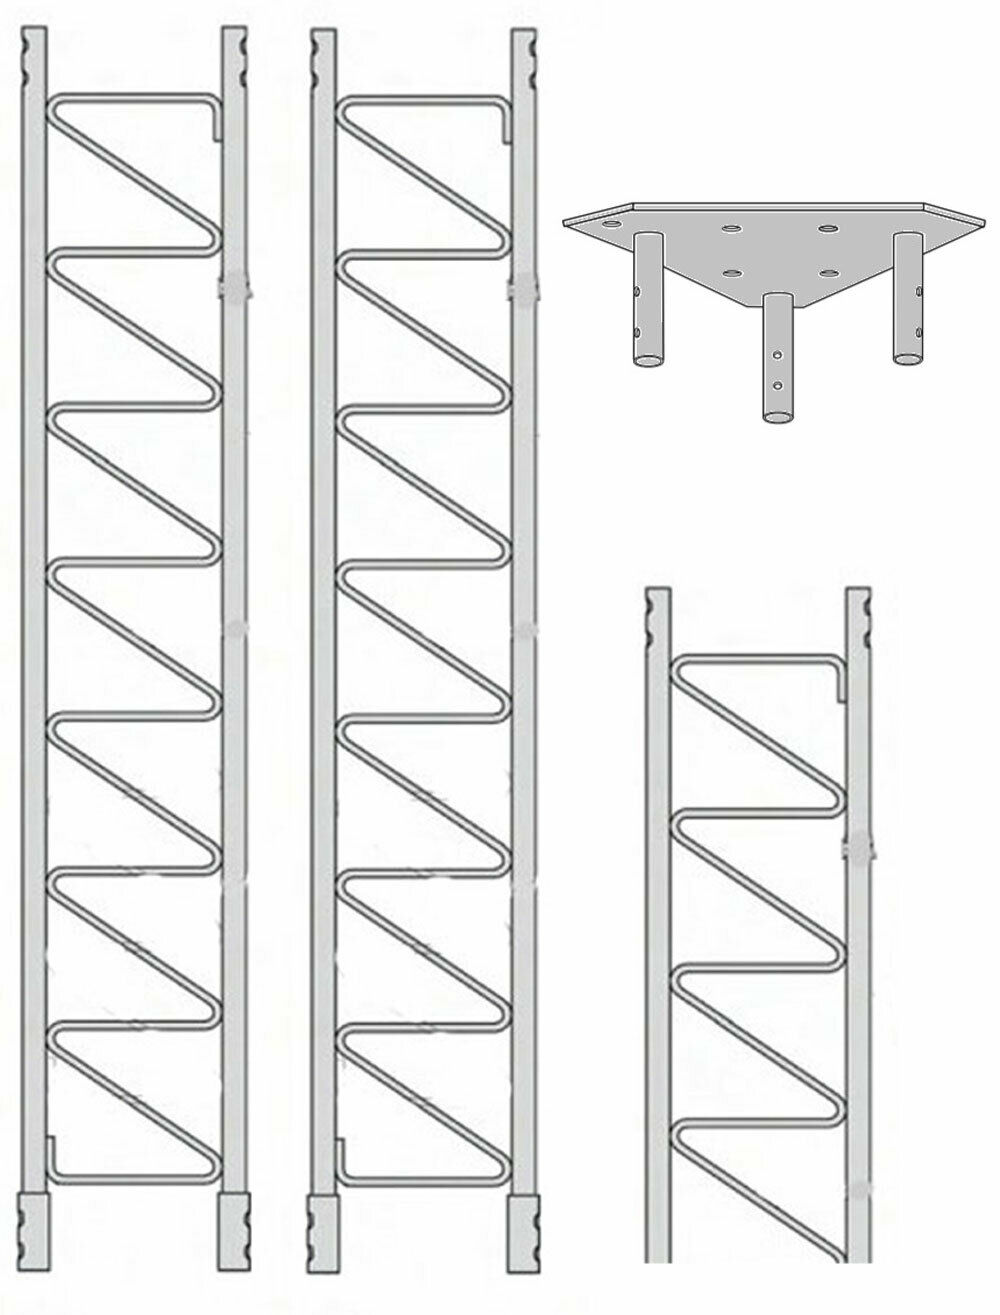 ROHN 55SS020    55G Series 20' Self Supporting Tower Kit . Available Now for 1433.00